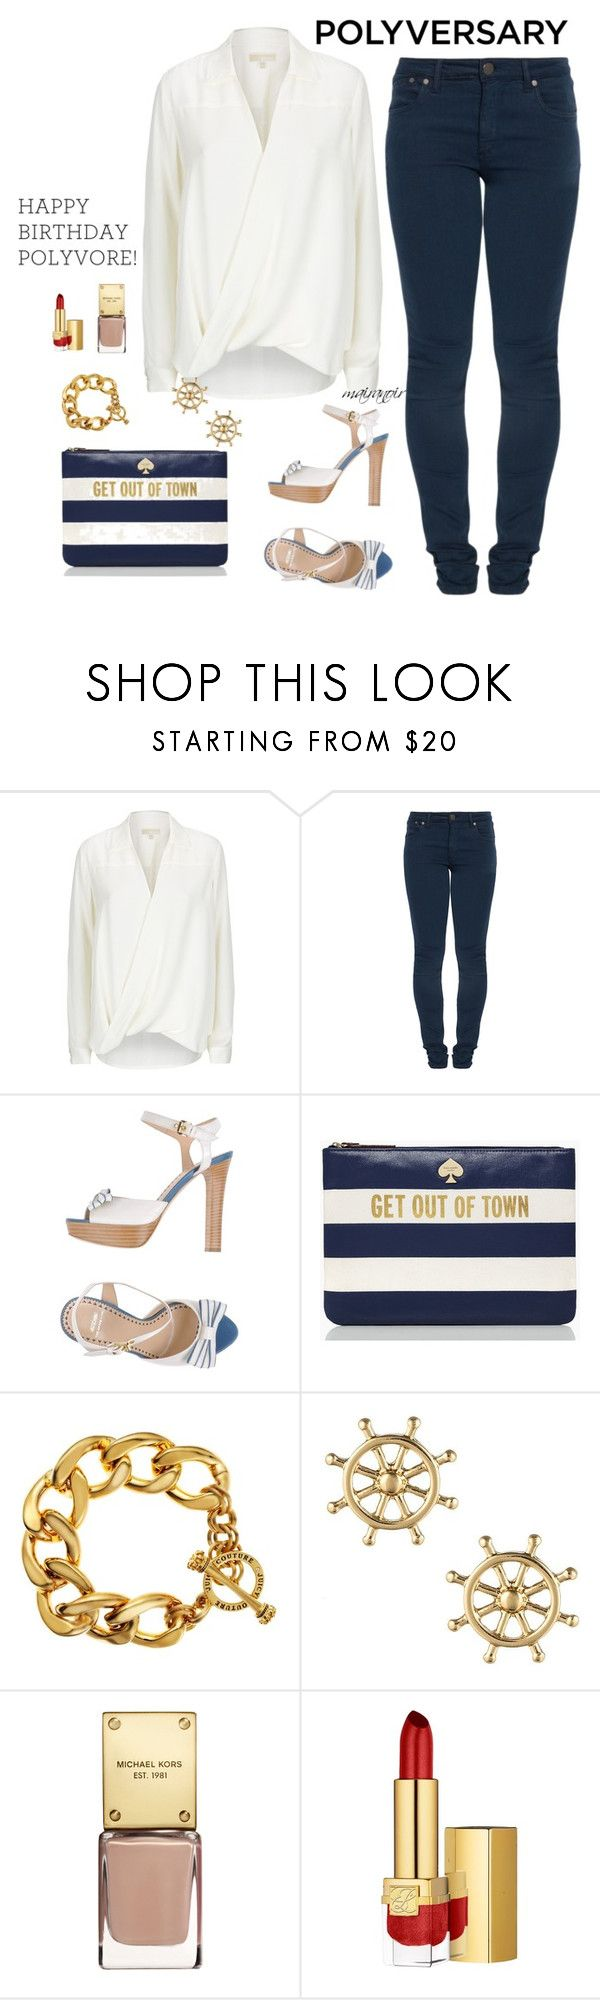 """Untitled #538"" by mairanoir ❤ liked on Polyvore featuring MICHAEL Michael Kors, dVb Victoria Beckham, Moschino Cheap & Chic, Kate Spade, Juicy Couture, Sperry, Estée Lauder, polyversary and contestentry"